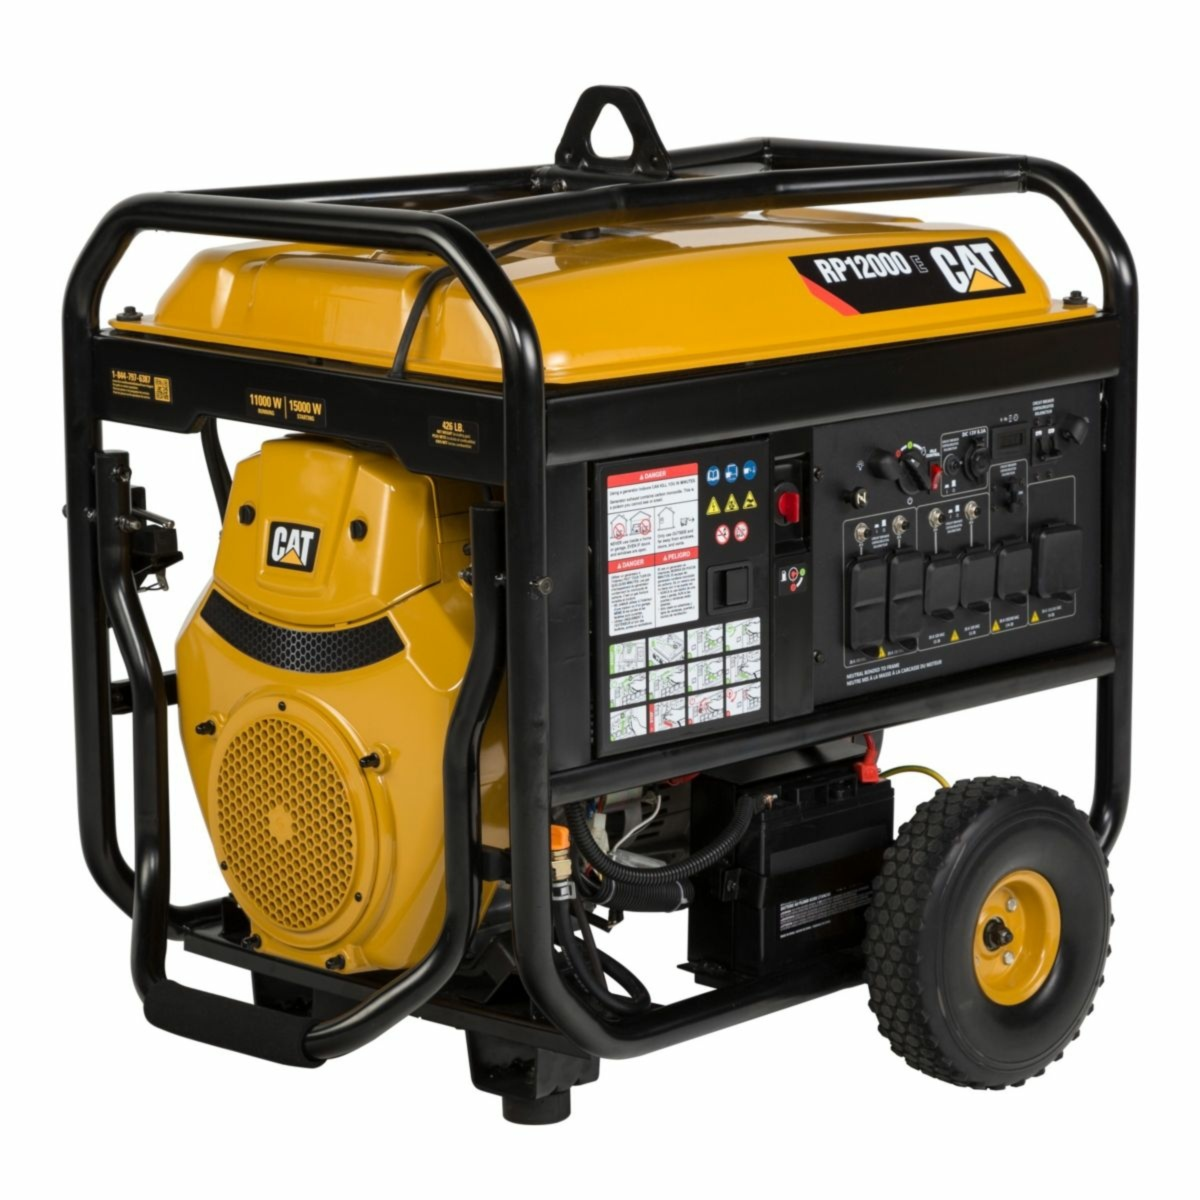 Best Portable Generator Reviews 2018 Top Small Models For The Money Wiring Diagram Further Wen In Seller